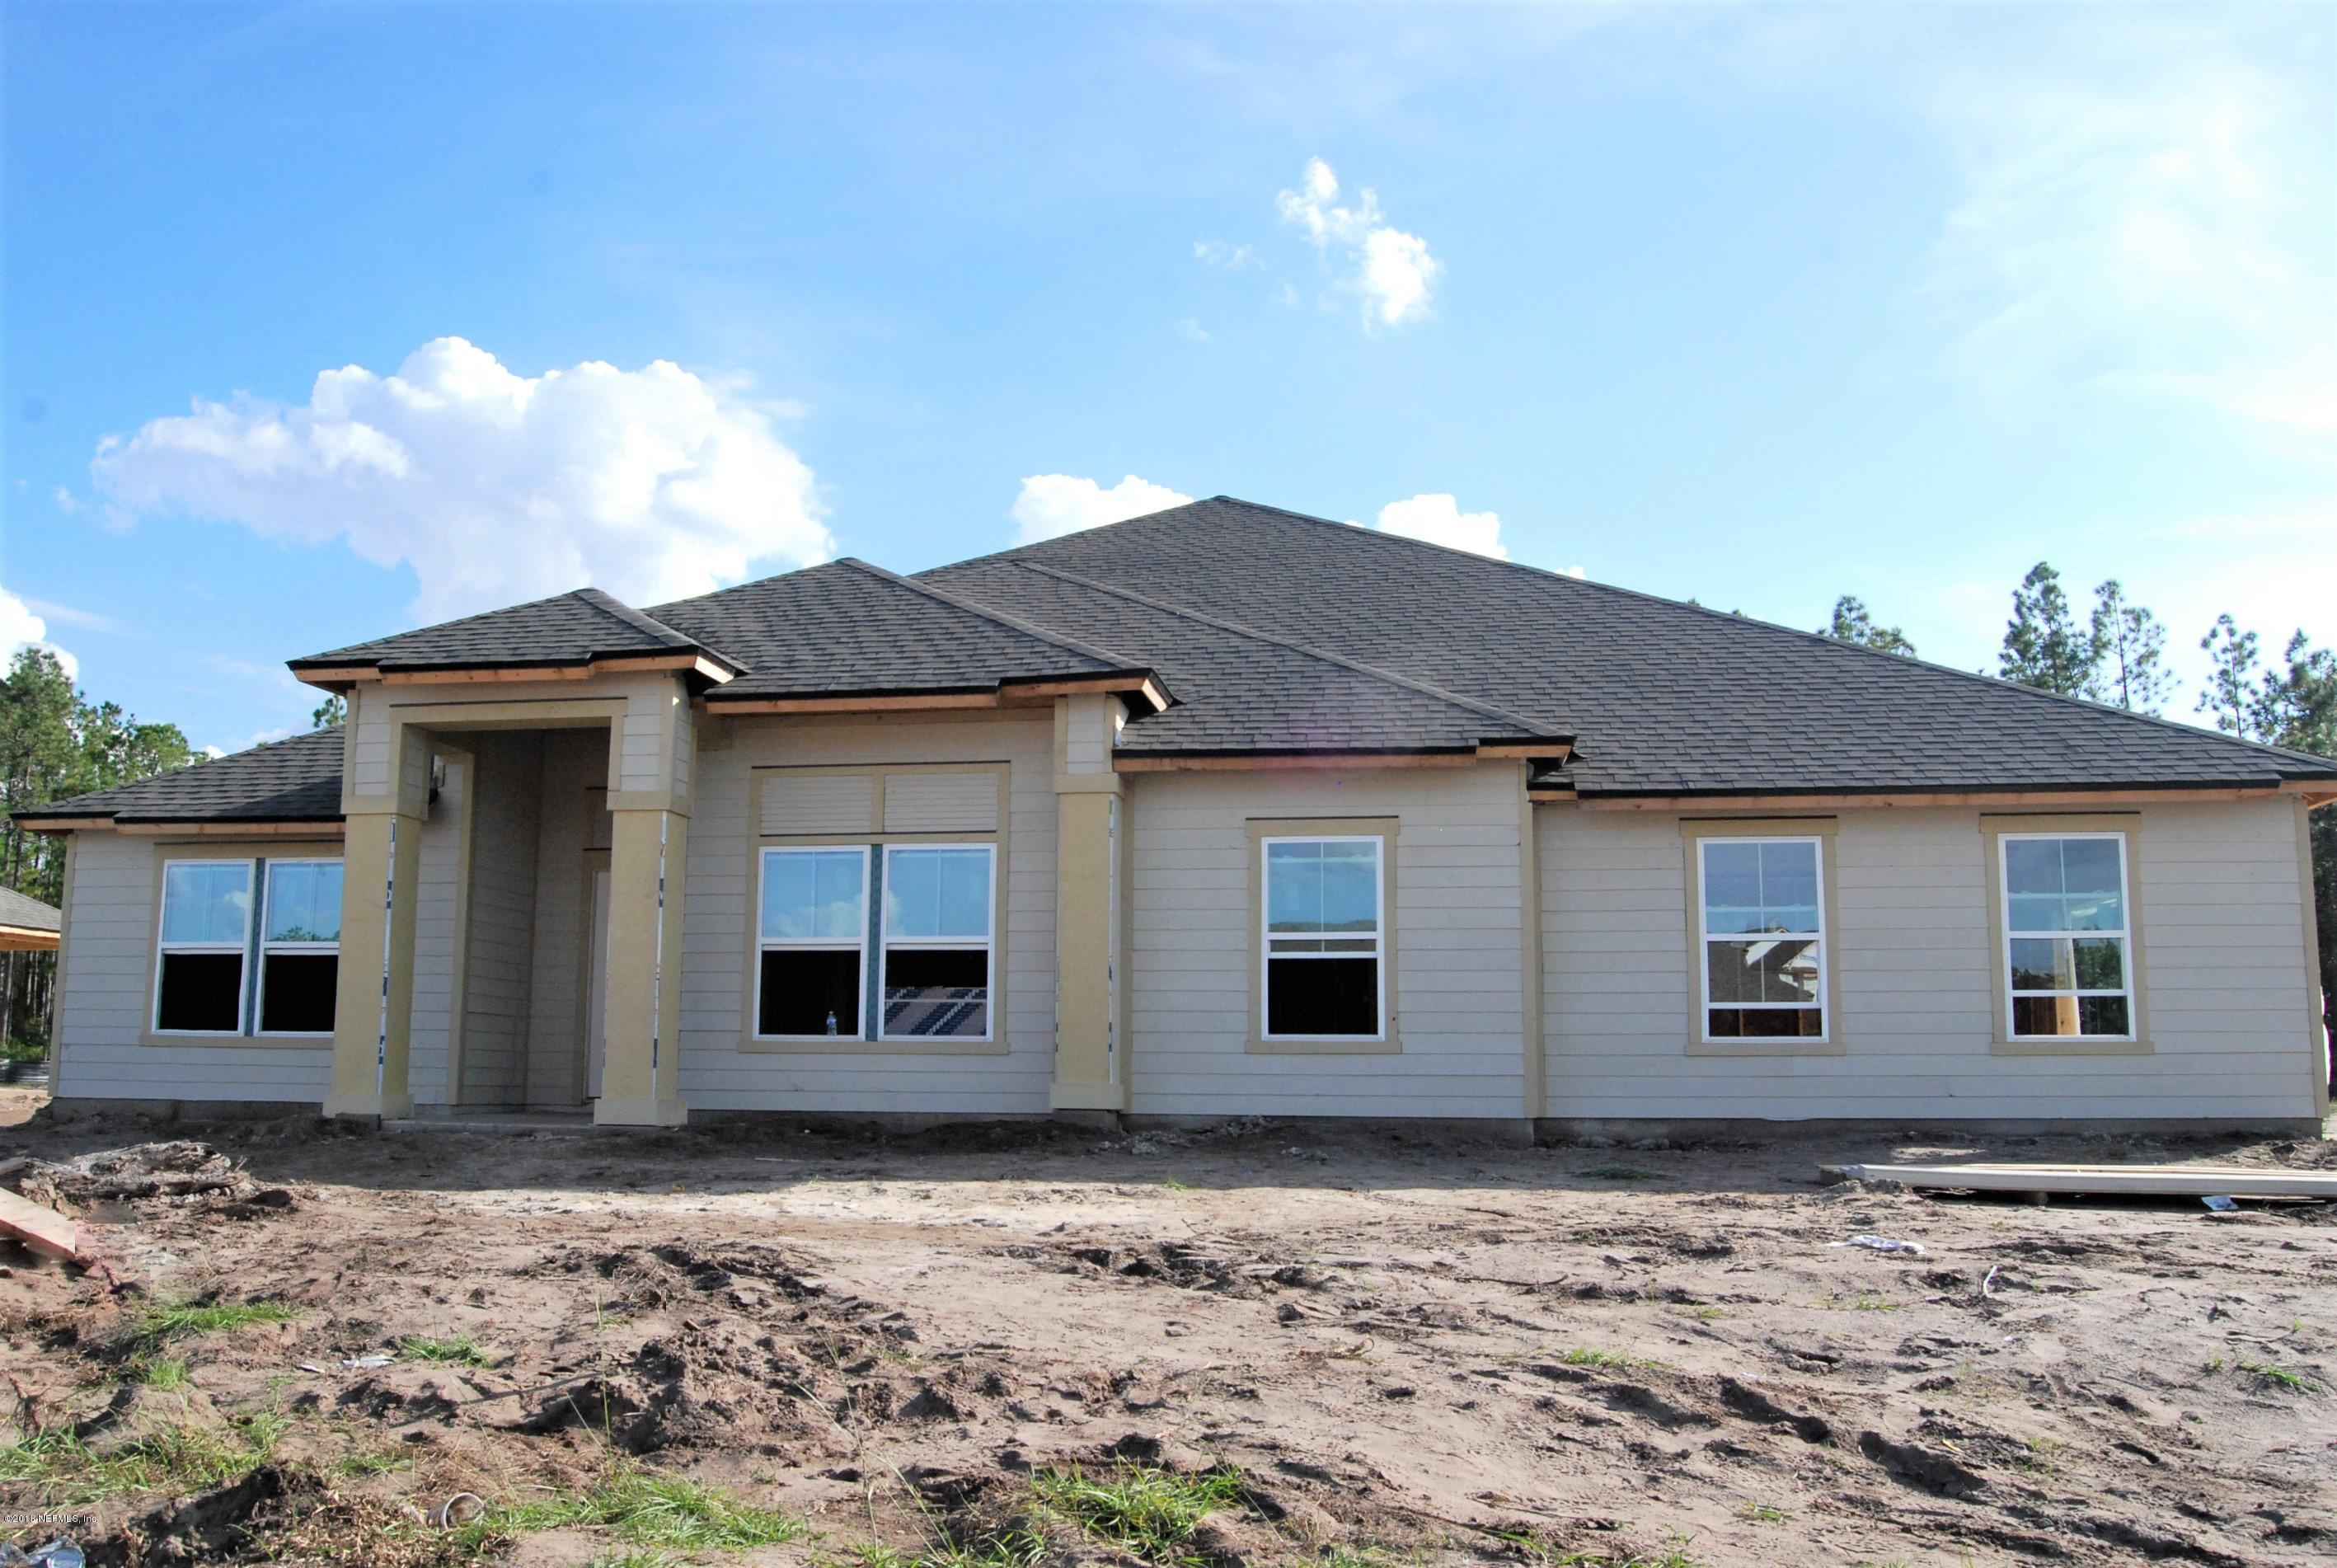 11549 PACEYS POND, JACKSONVILLE, FLORIDA 32222, 4 Bedrooms Bedrooms, ,3 BathroomsBathrooms,Residential - single family,For sale,PACEYS POND,953199